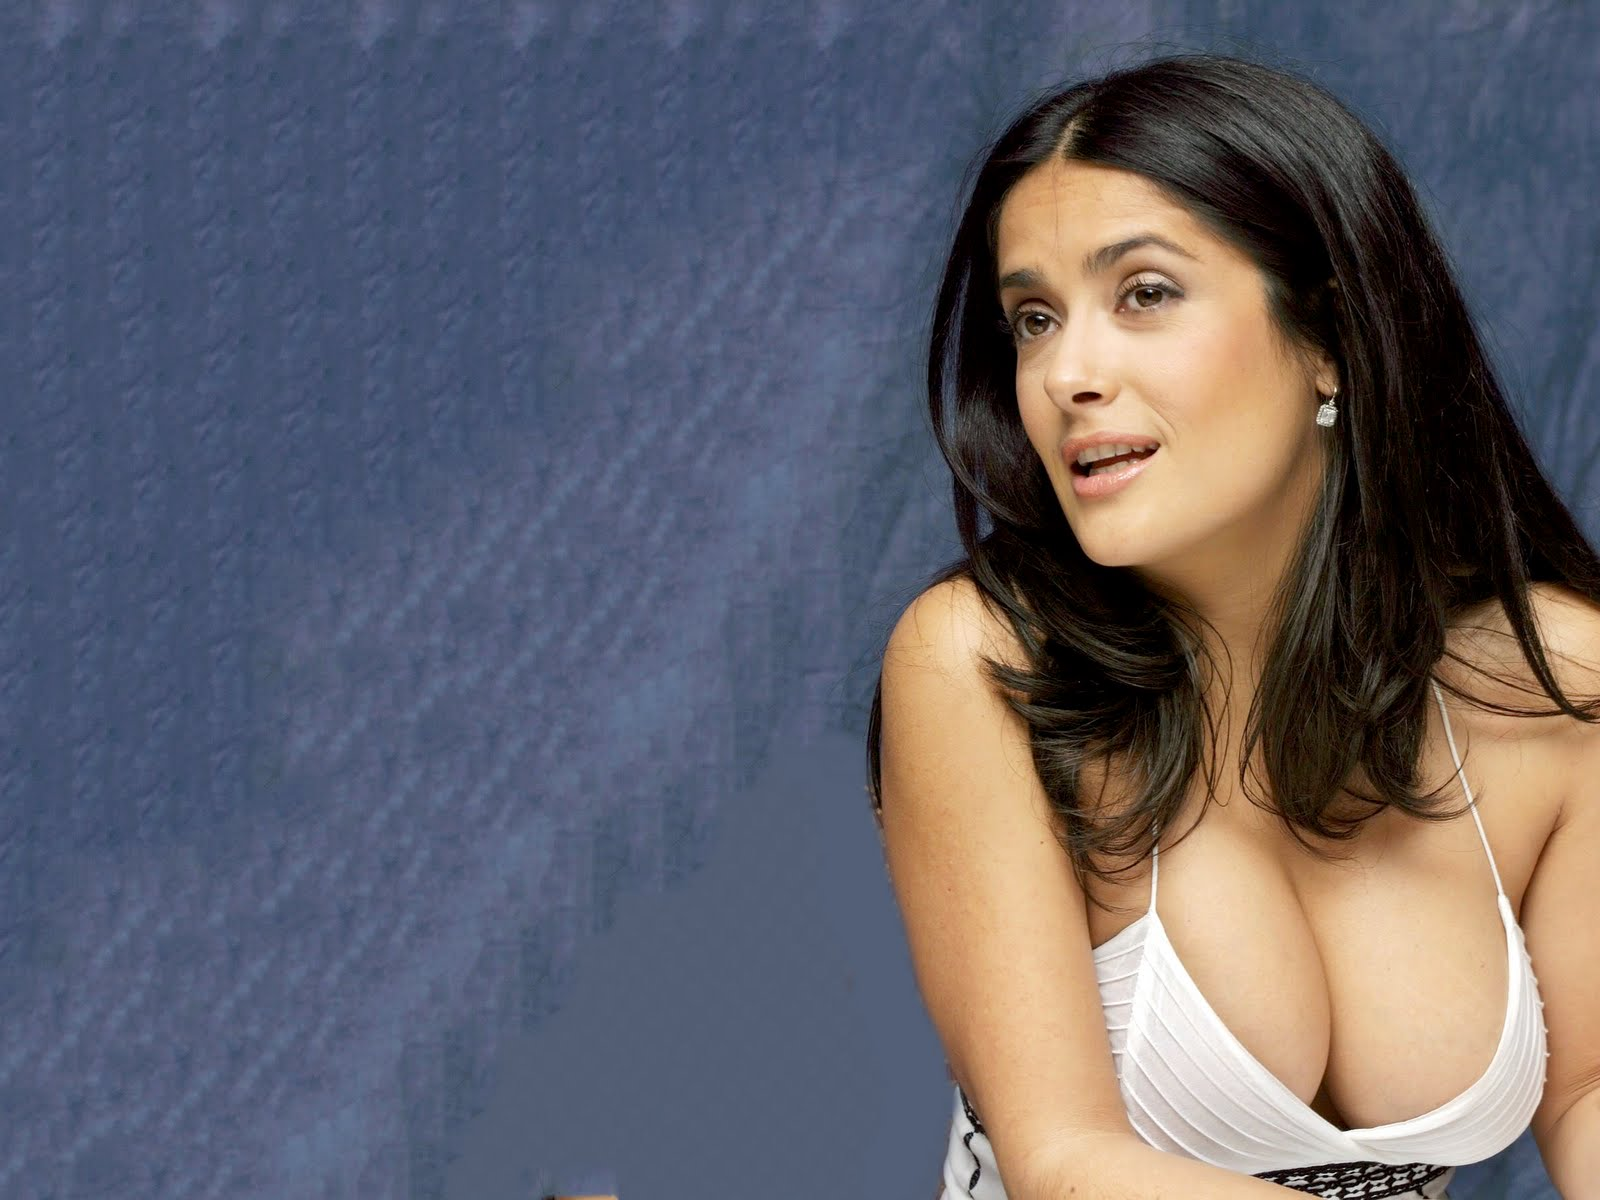 http://1.bp.blogspot.com/-4N2bKDbib50/Tjhpw69veeI/AAAAAAAAATk/ODSgQuBCpZ0/s1600/Salma_Hayek_High_Resolution_Aag_Wallpapers_99002.jpg